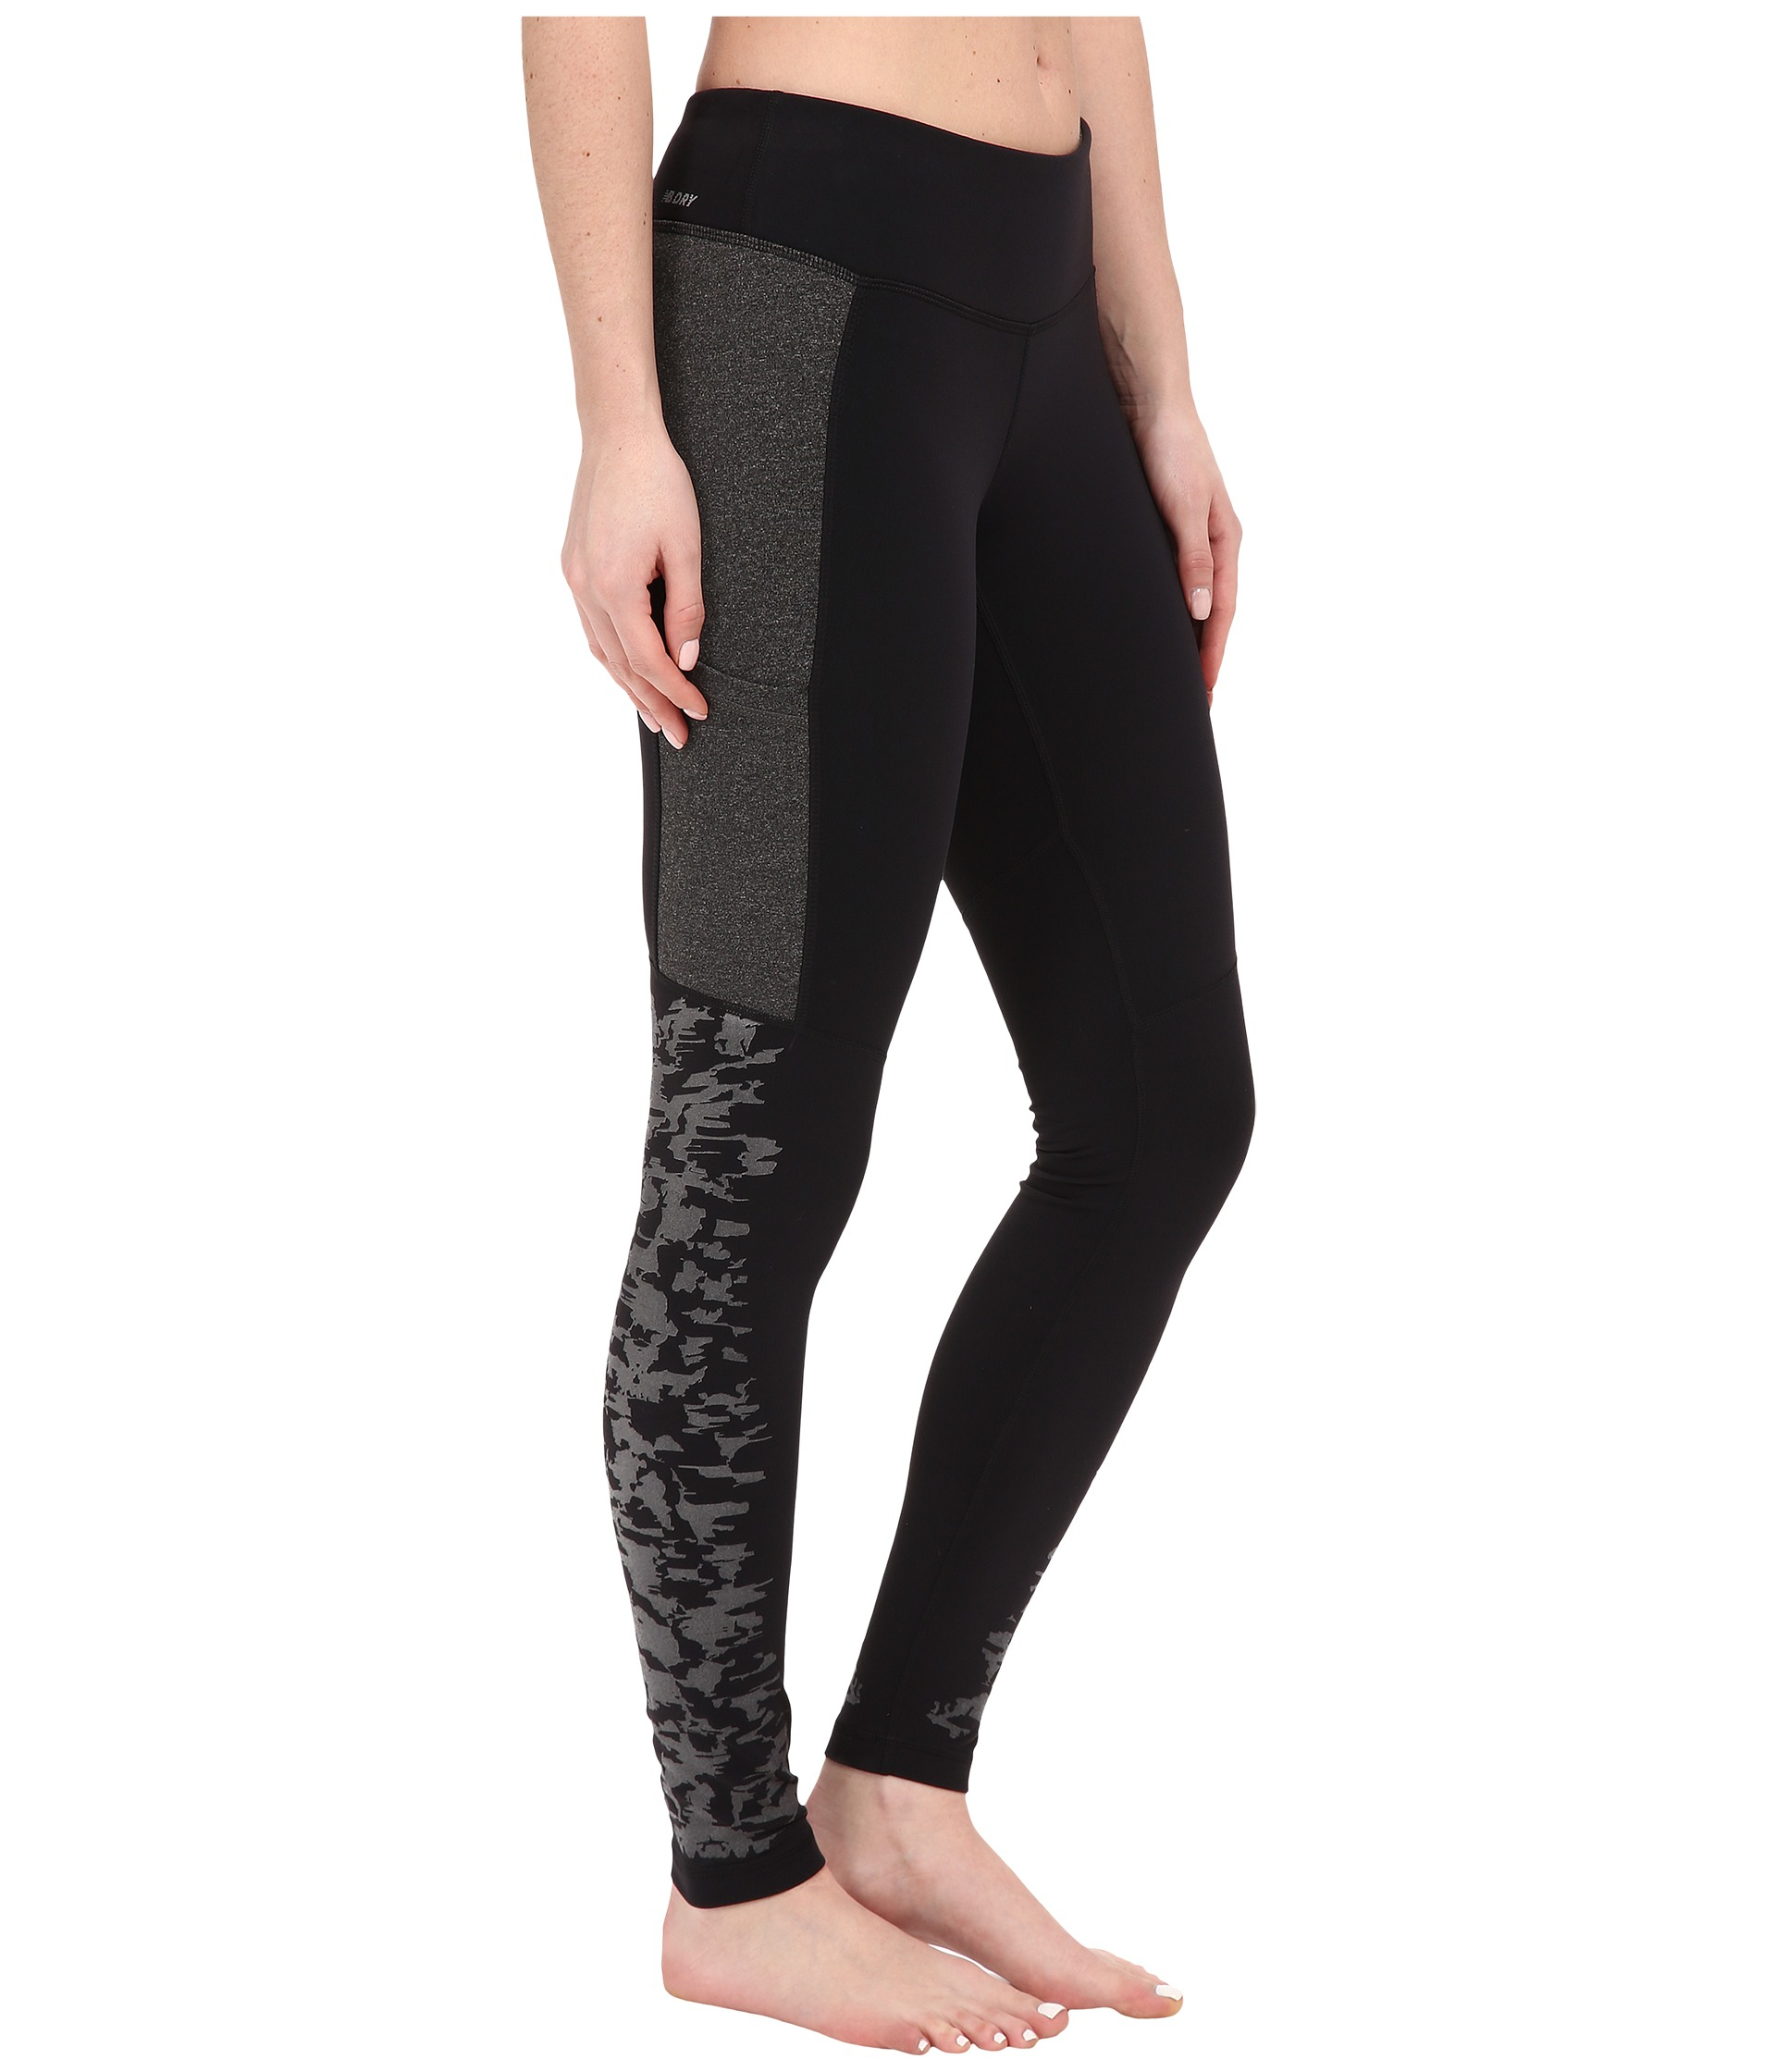 d1638a47ffe43 Our Impact Premium Tight flaunts cool print patterns up and down your leg,  plus breezy mesh insets behind your knee. And to enhance comfort, ...